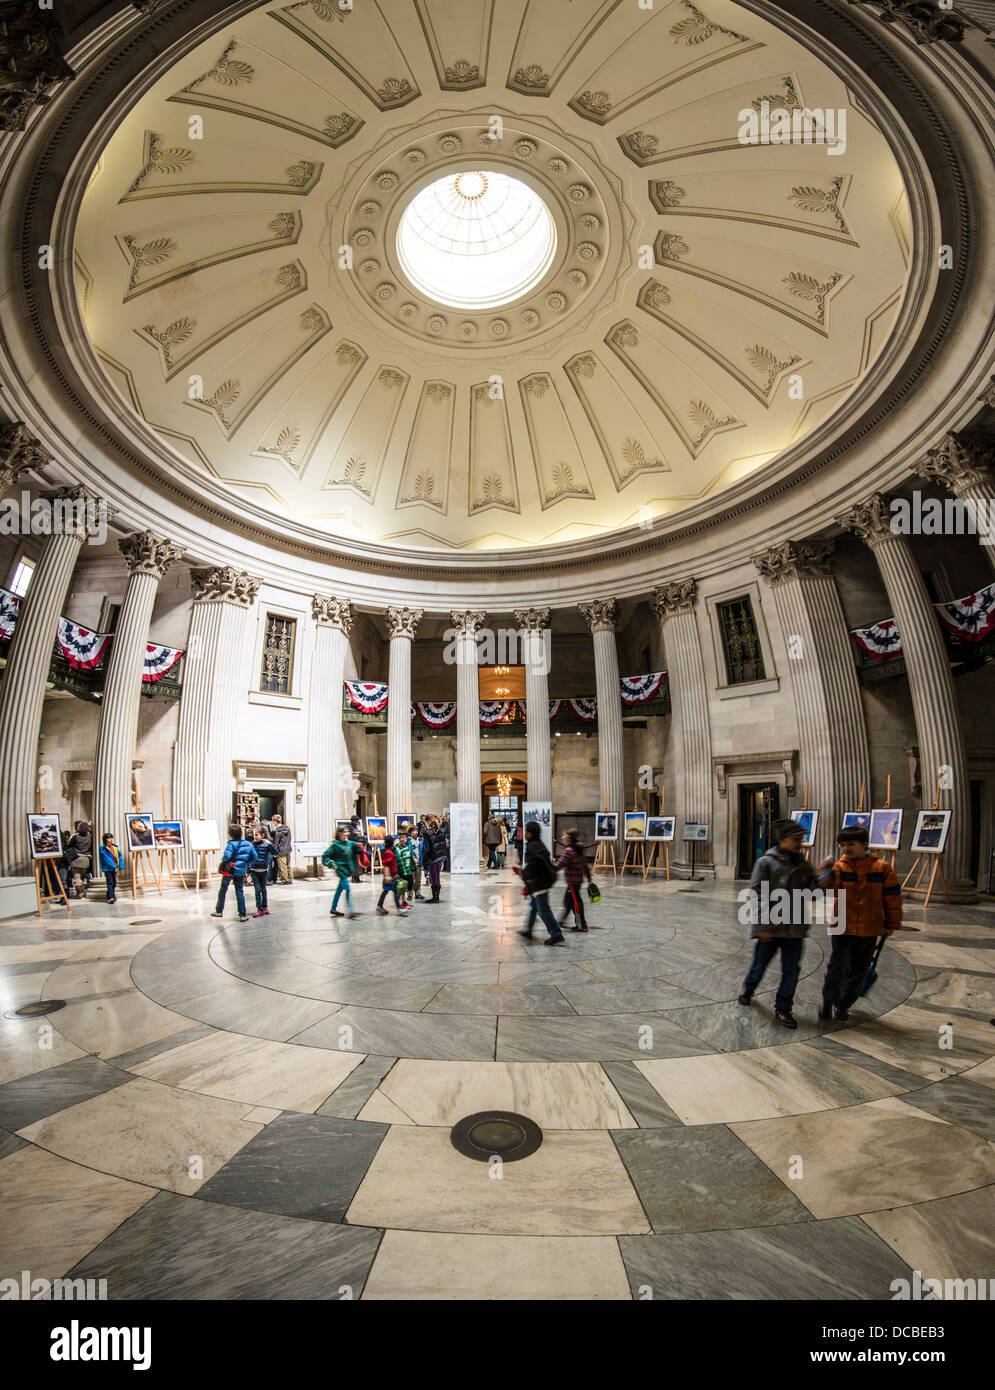 Federal Hall interior in New York, New York, USA. - Stock Image